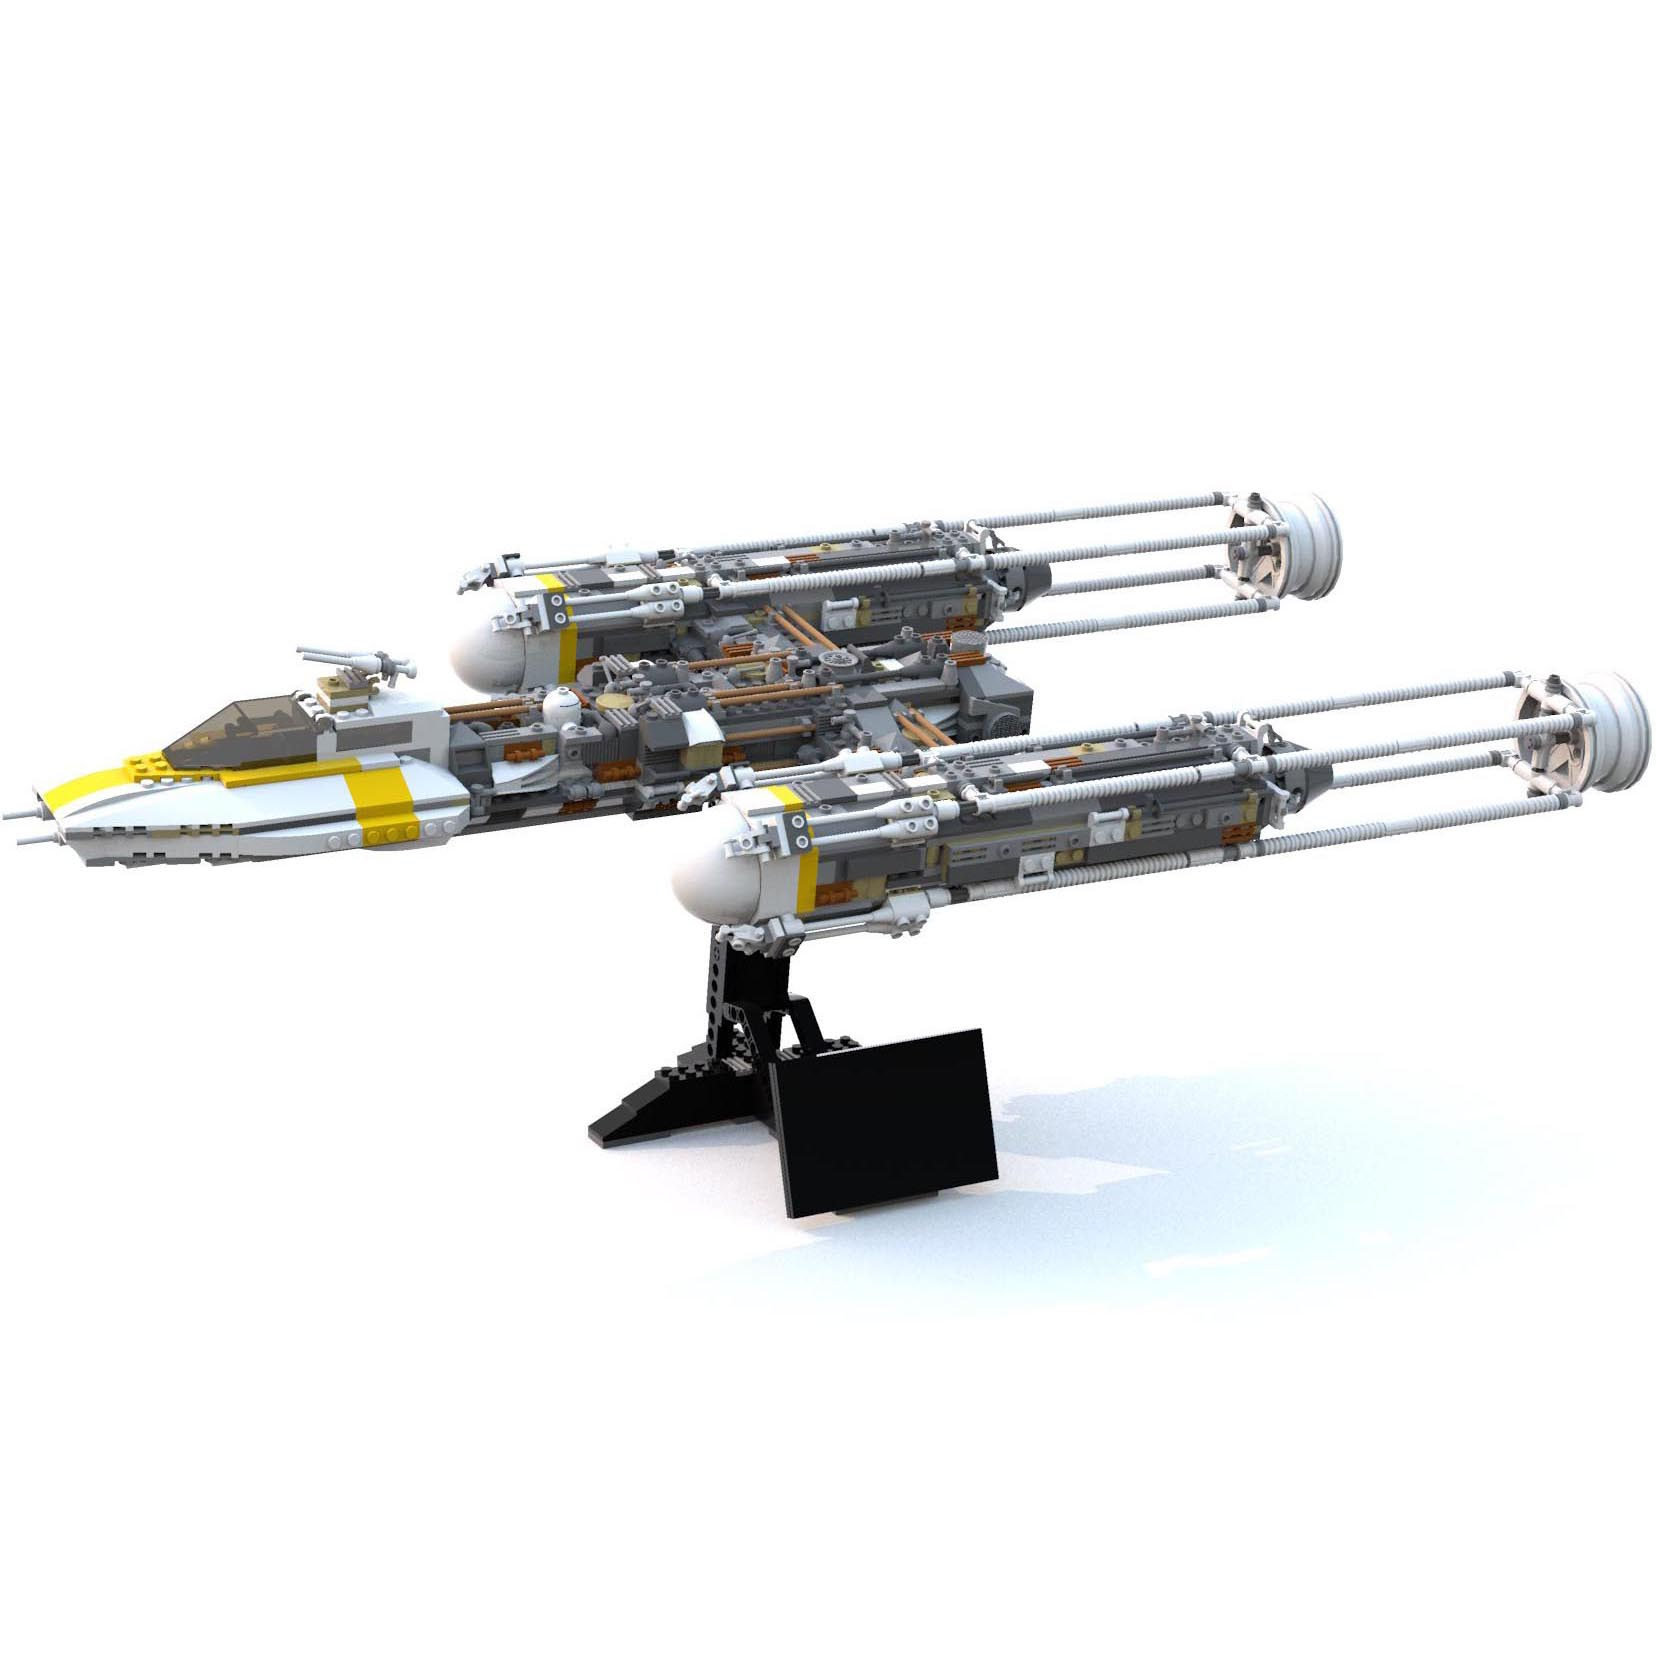 zv/Y-wing_Attack_Starfighter_1_1494948478_826